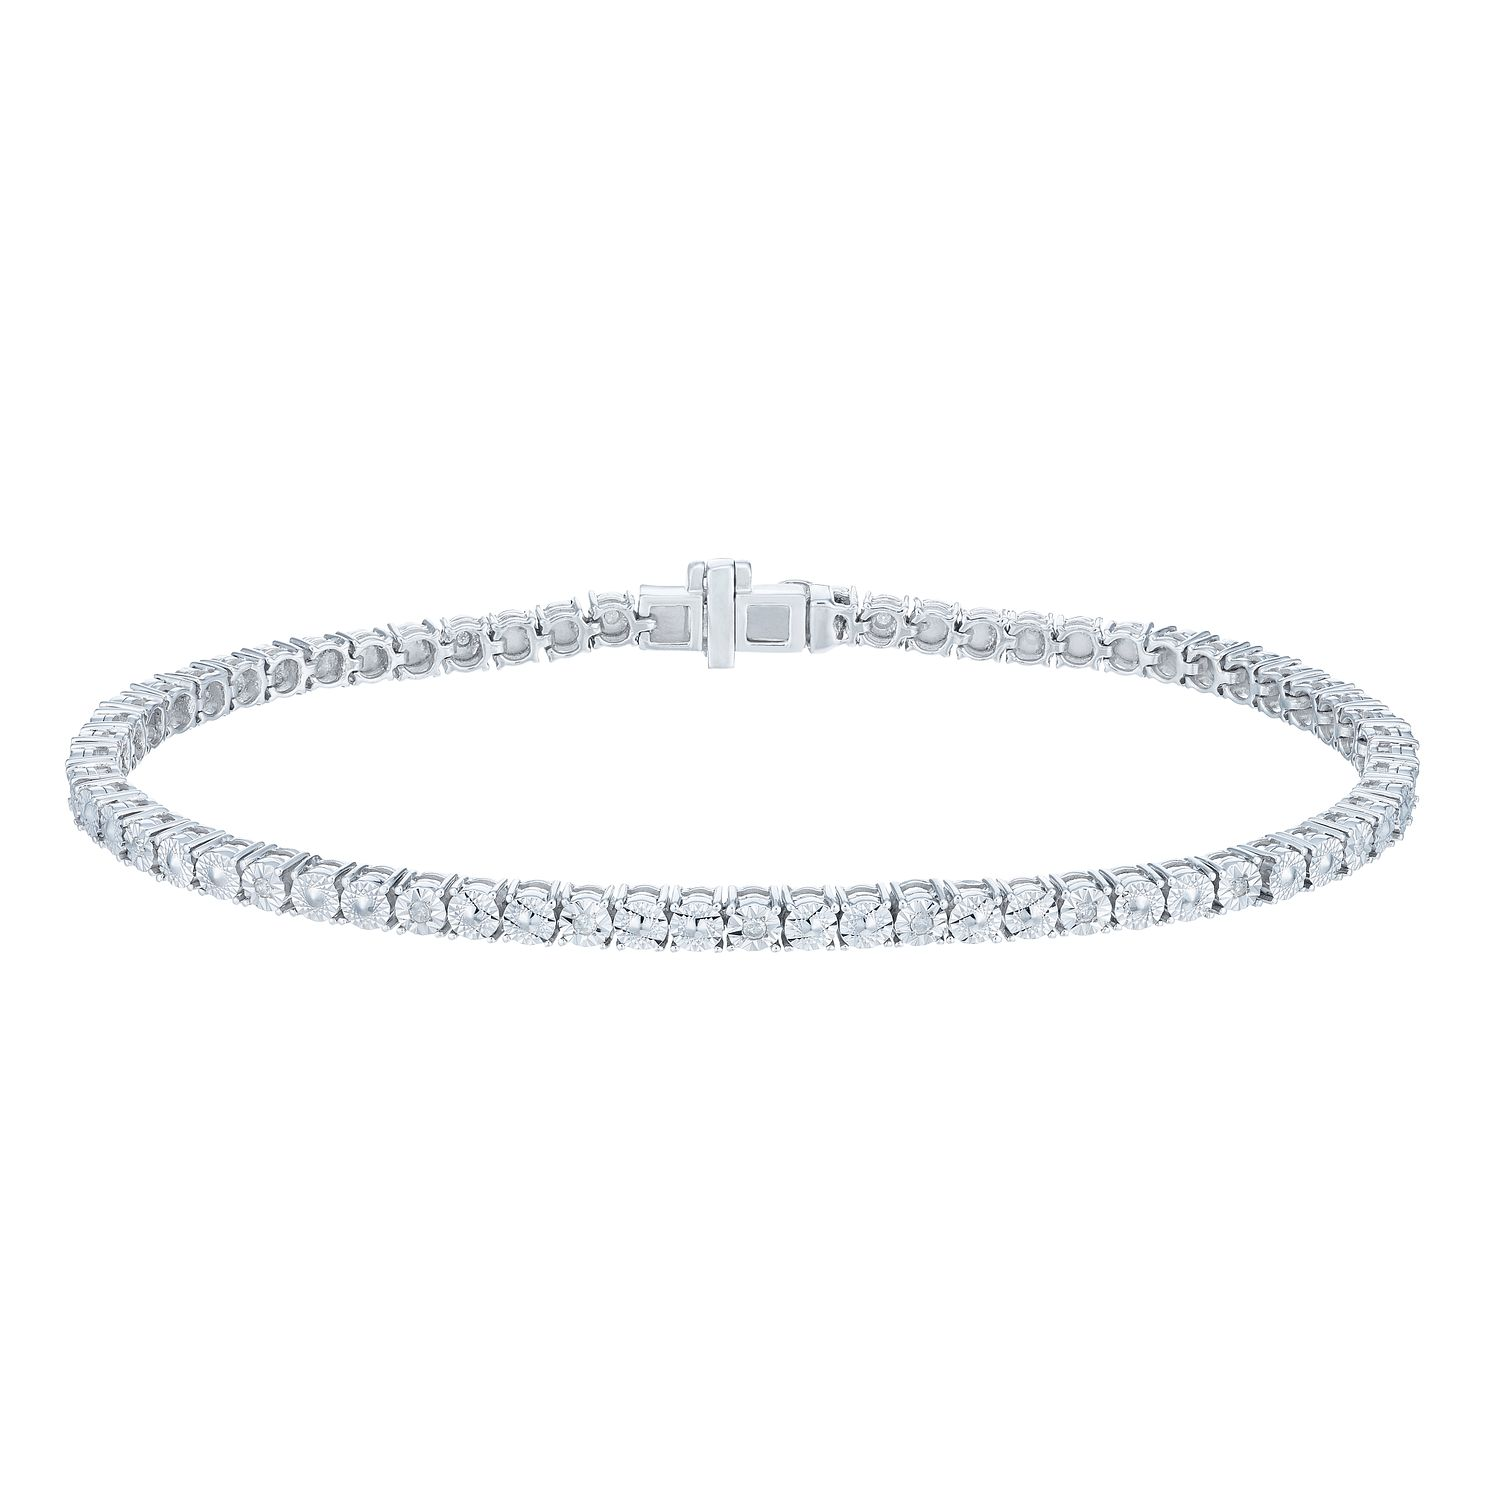 cate bracelet bracelets chloe cz leila girls products for and tennis jewelry women silver gold white